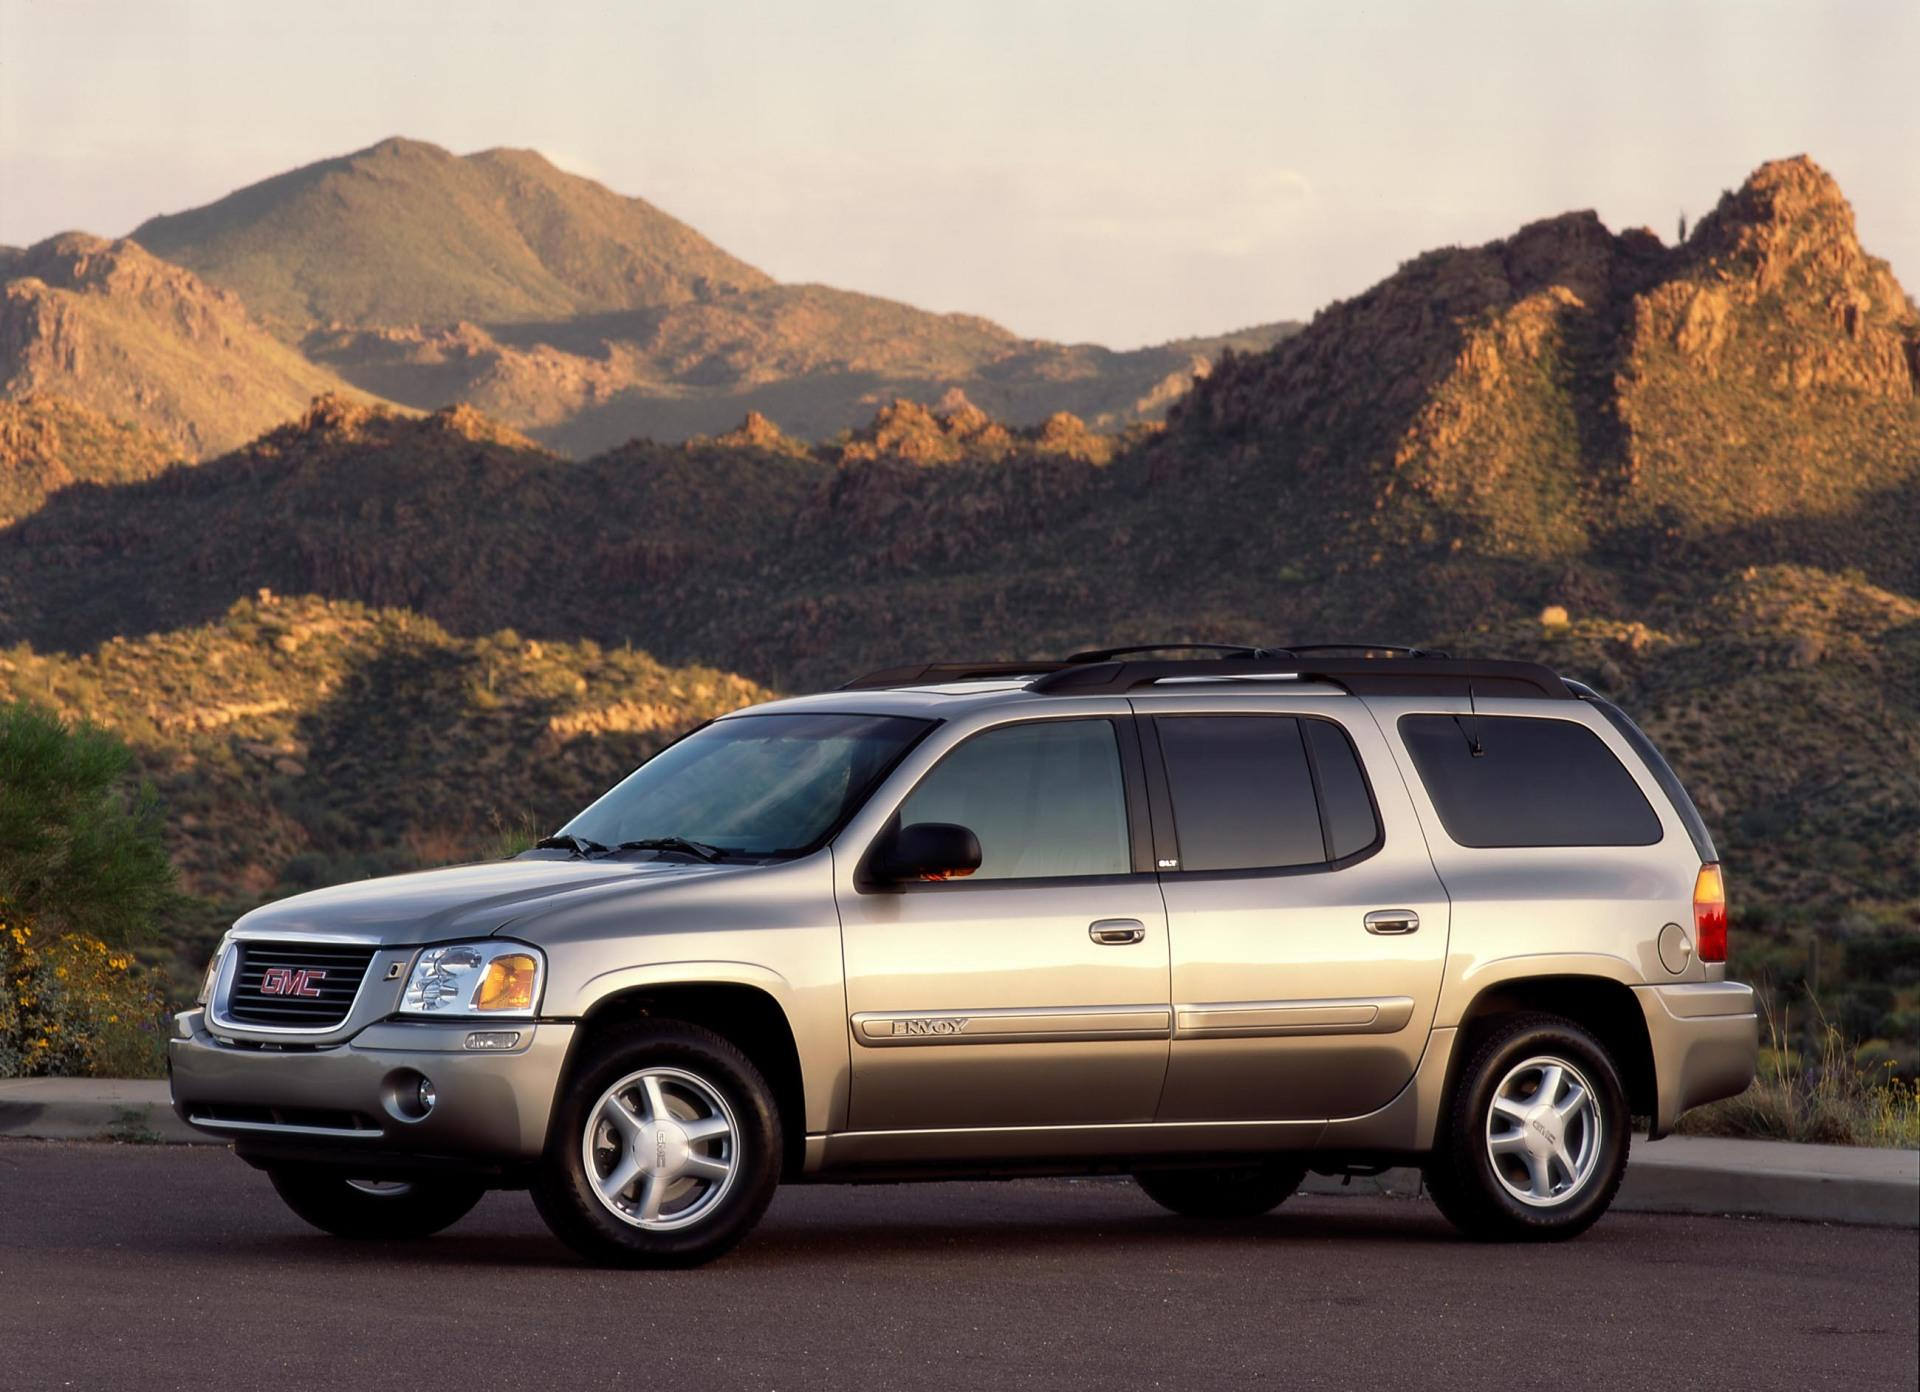 Gmc Envoy Recalls On 1999 Ford Expedition